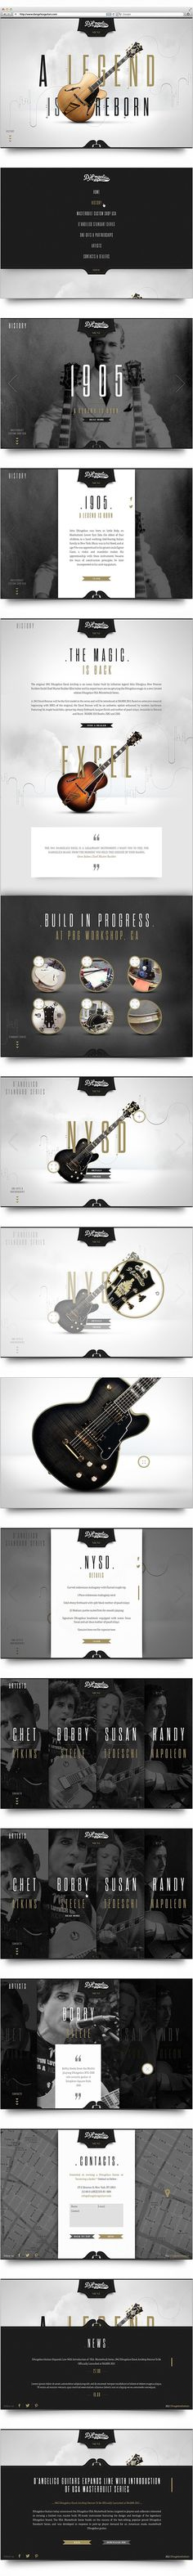 D'Angelico Guitars on Behance #guitar #white #design #black #gold #web